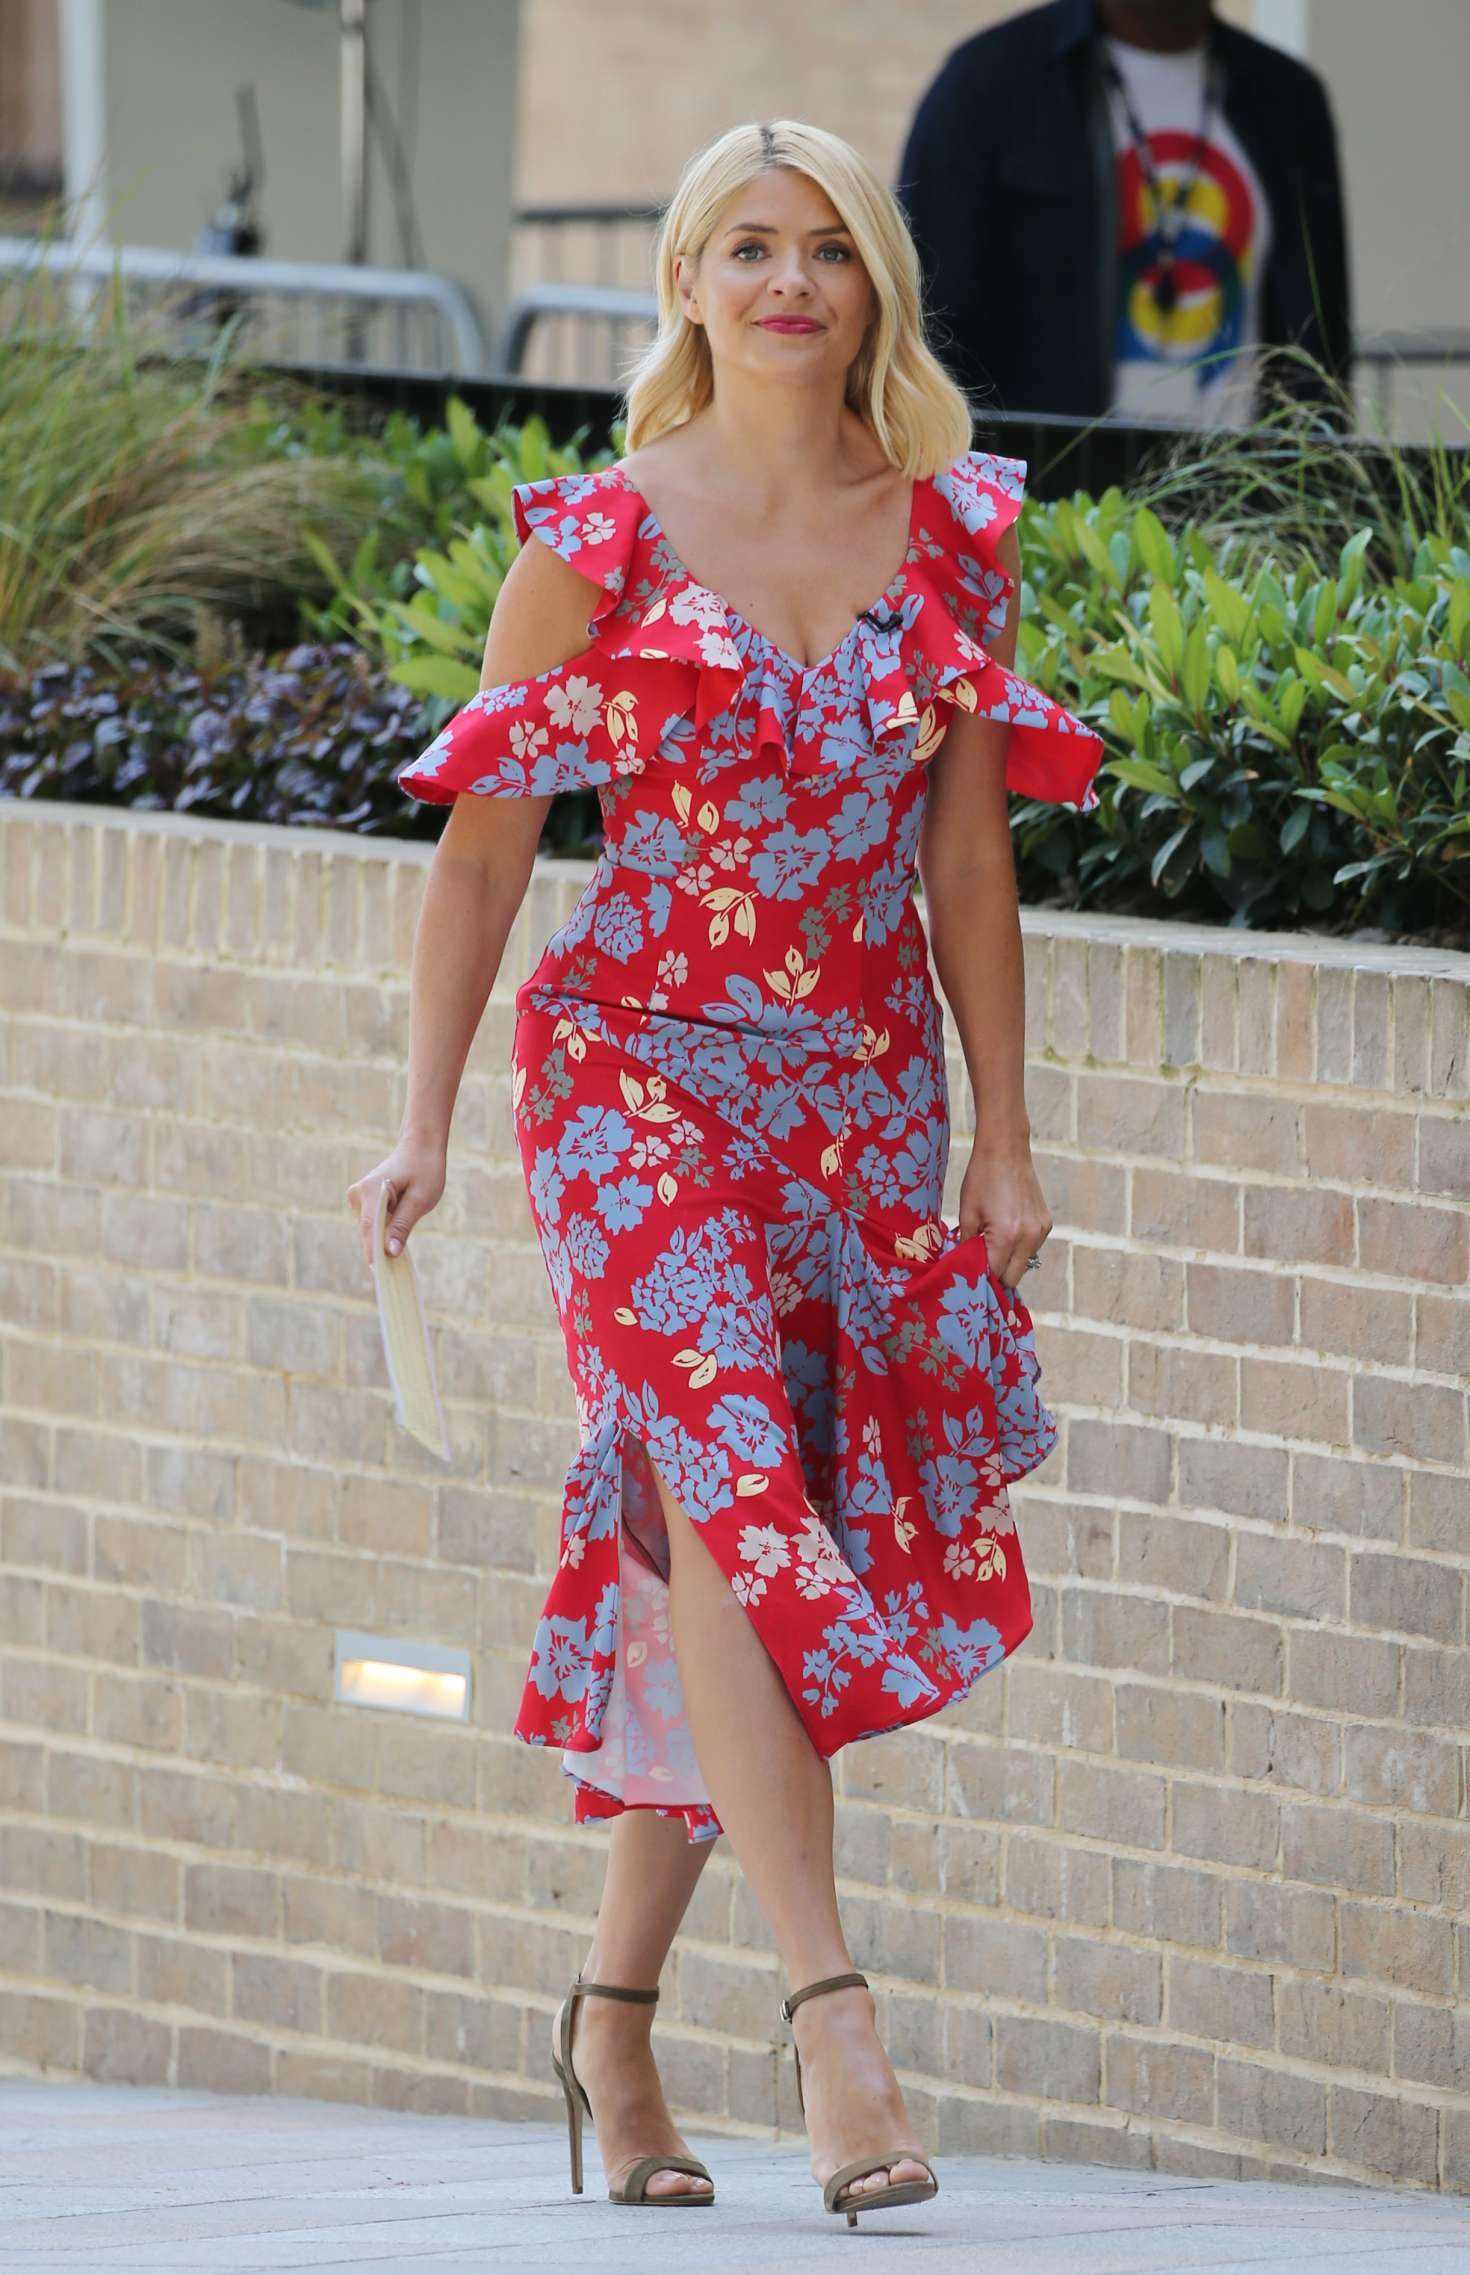 Holly Willoughby 2018 : Holly Willoughby at ITV Studios -05